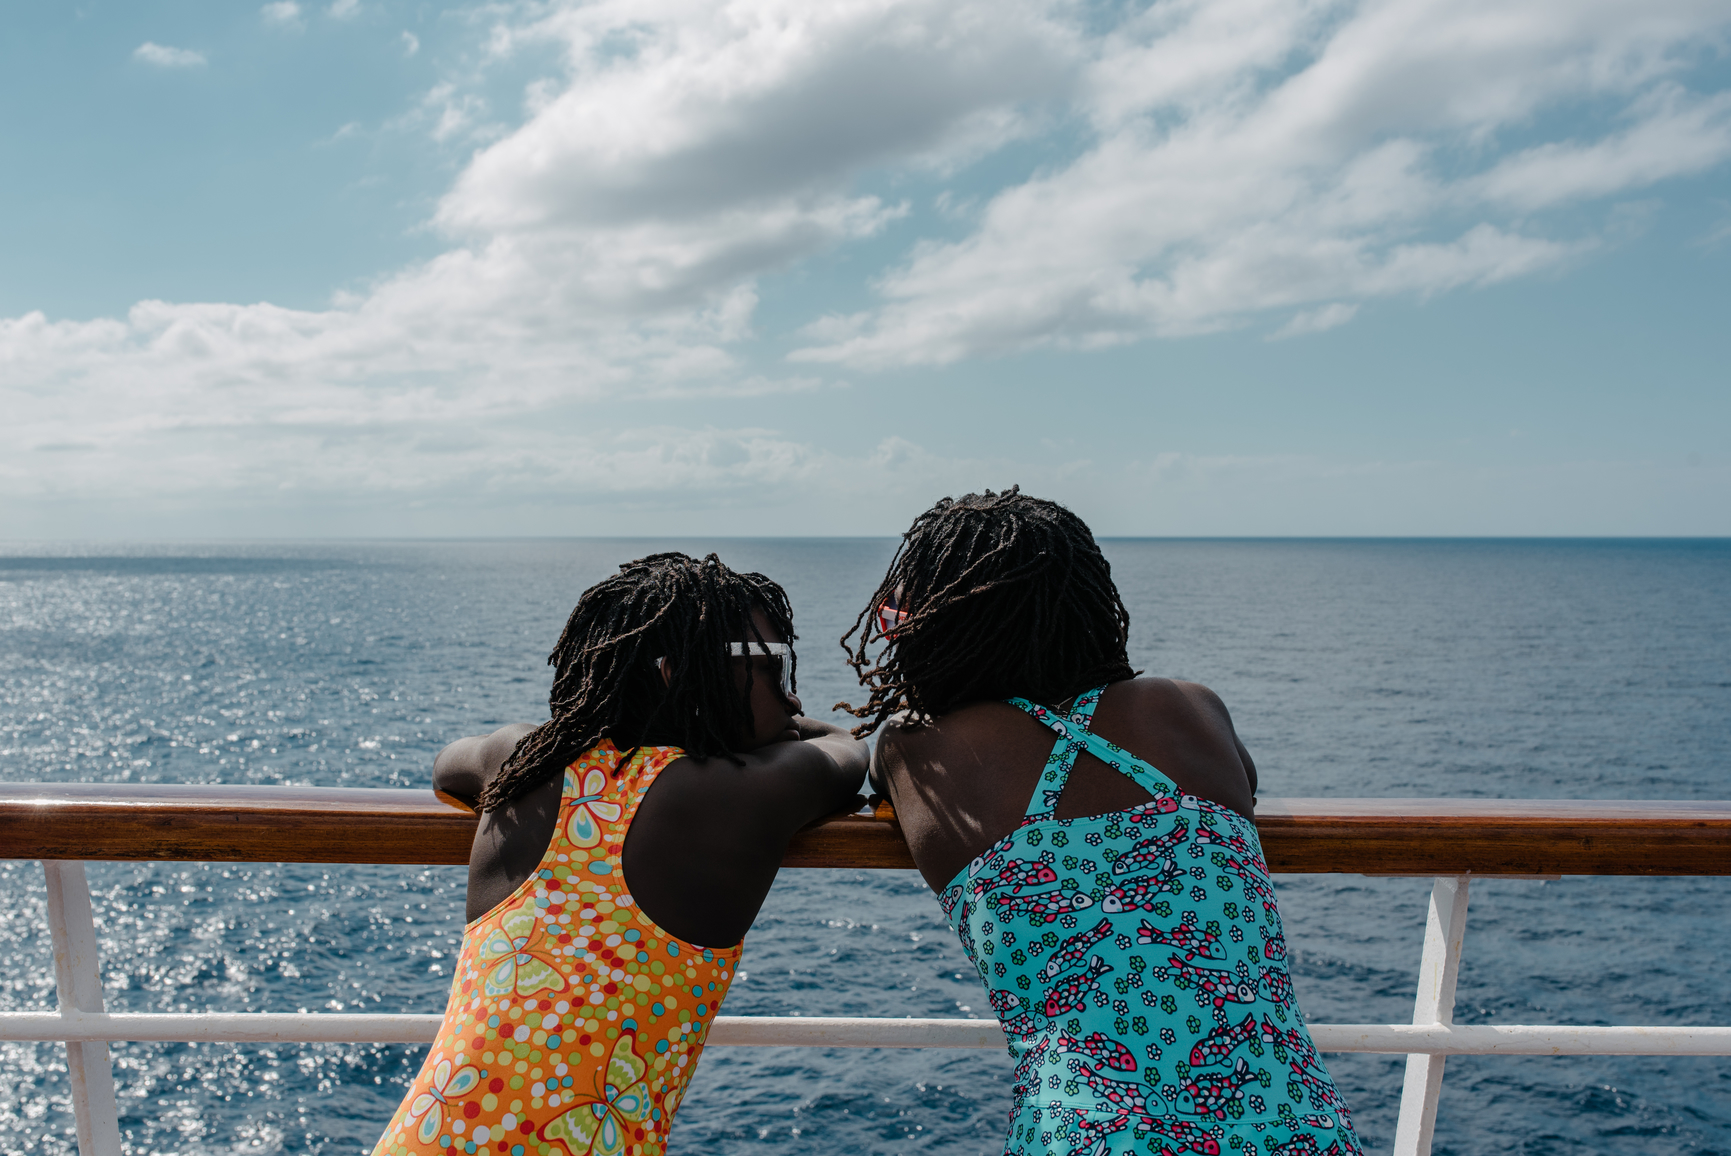 Two black girls in swimming suit on the deck of a sailing cruise ship watching the ocean